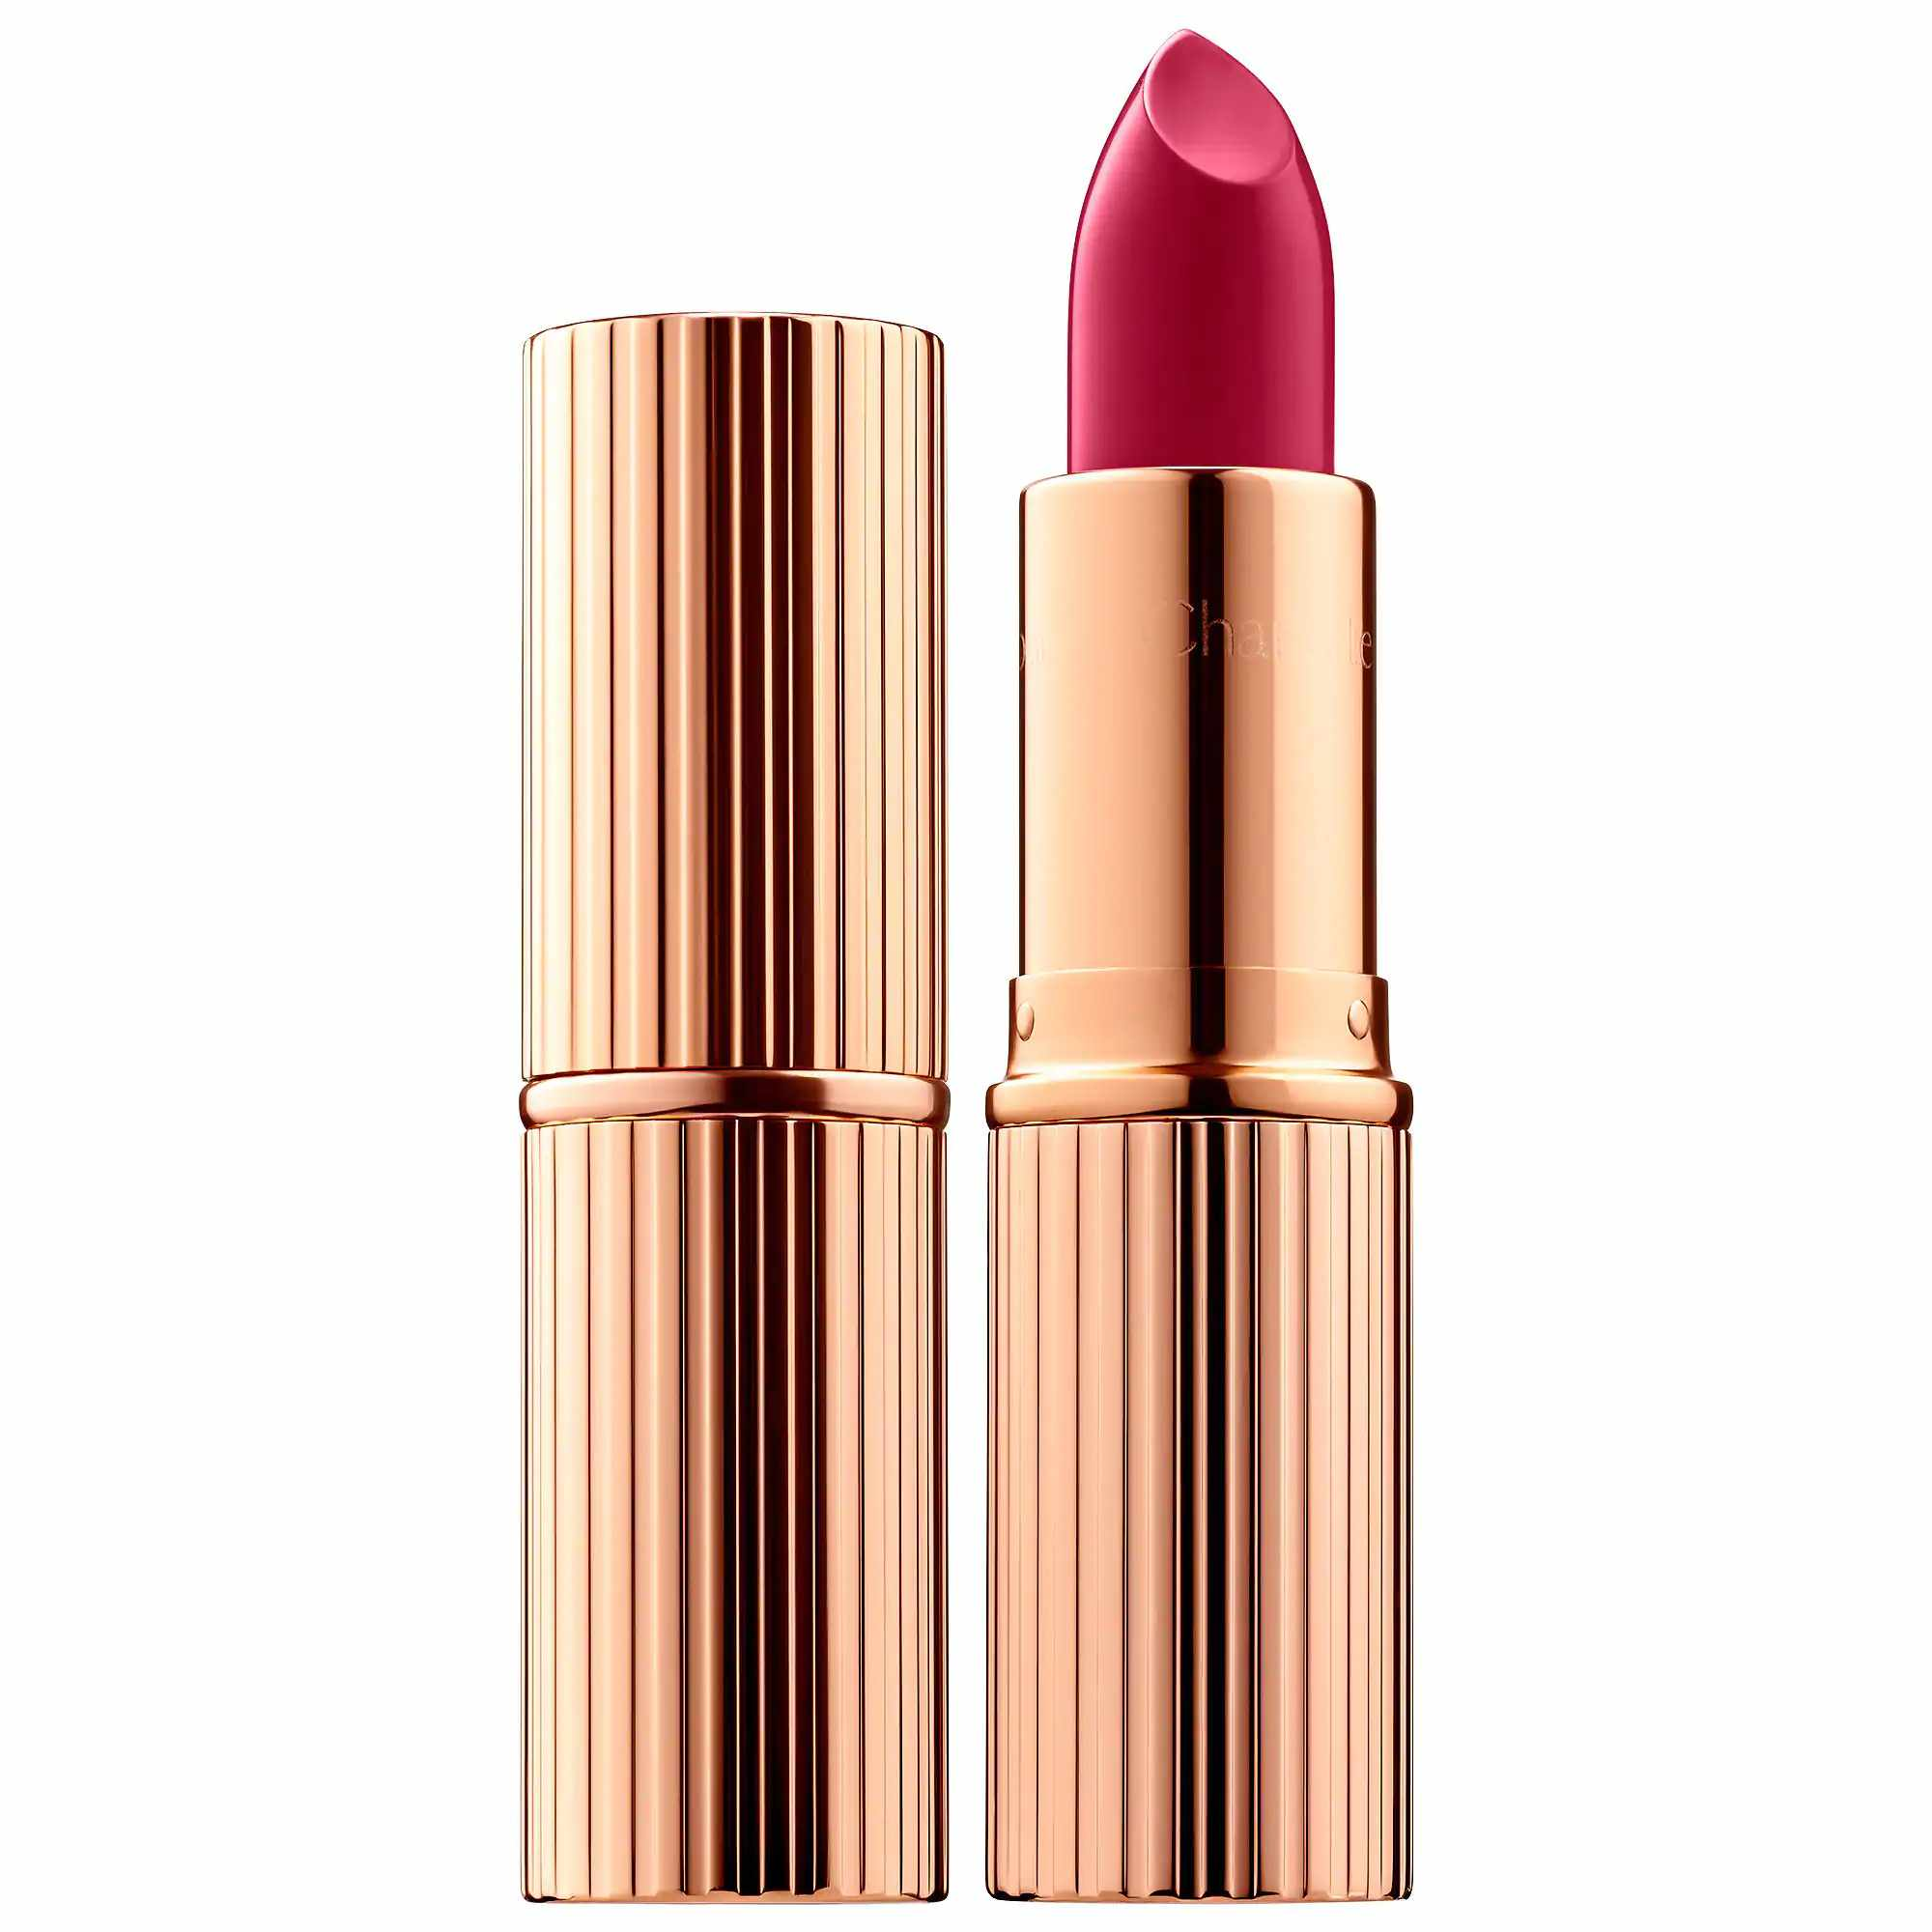 Behold: The Best Lipsticks of All Time